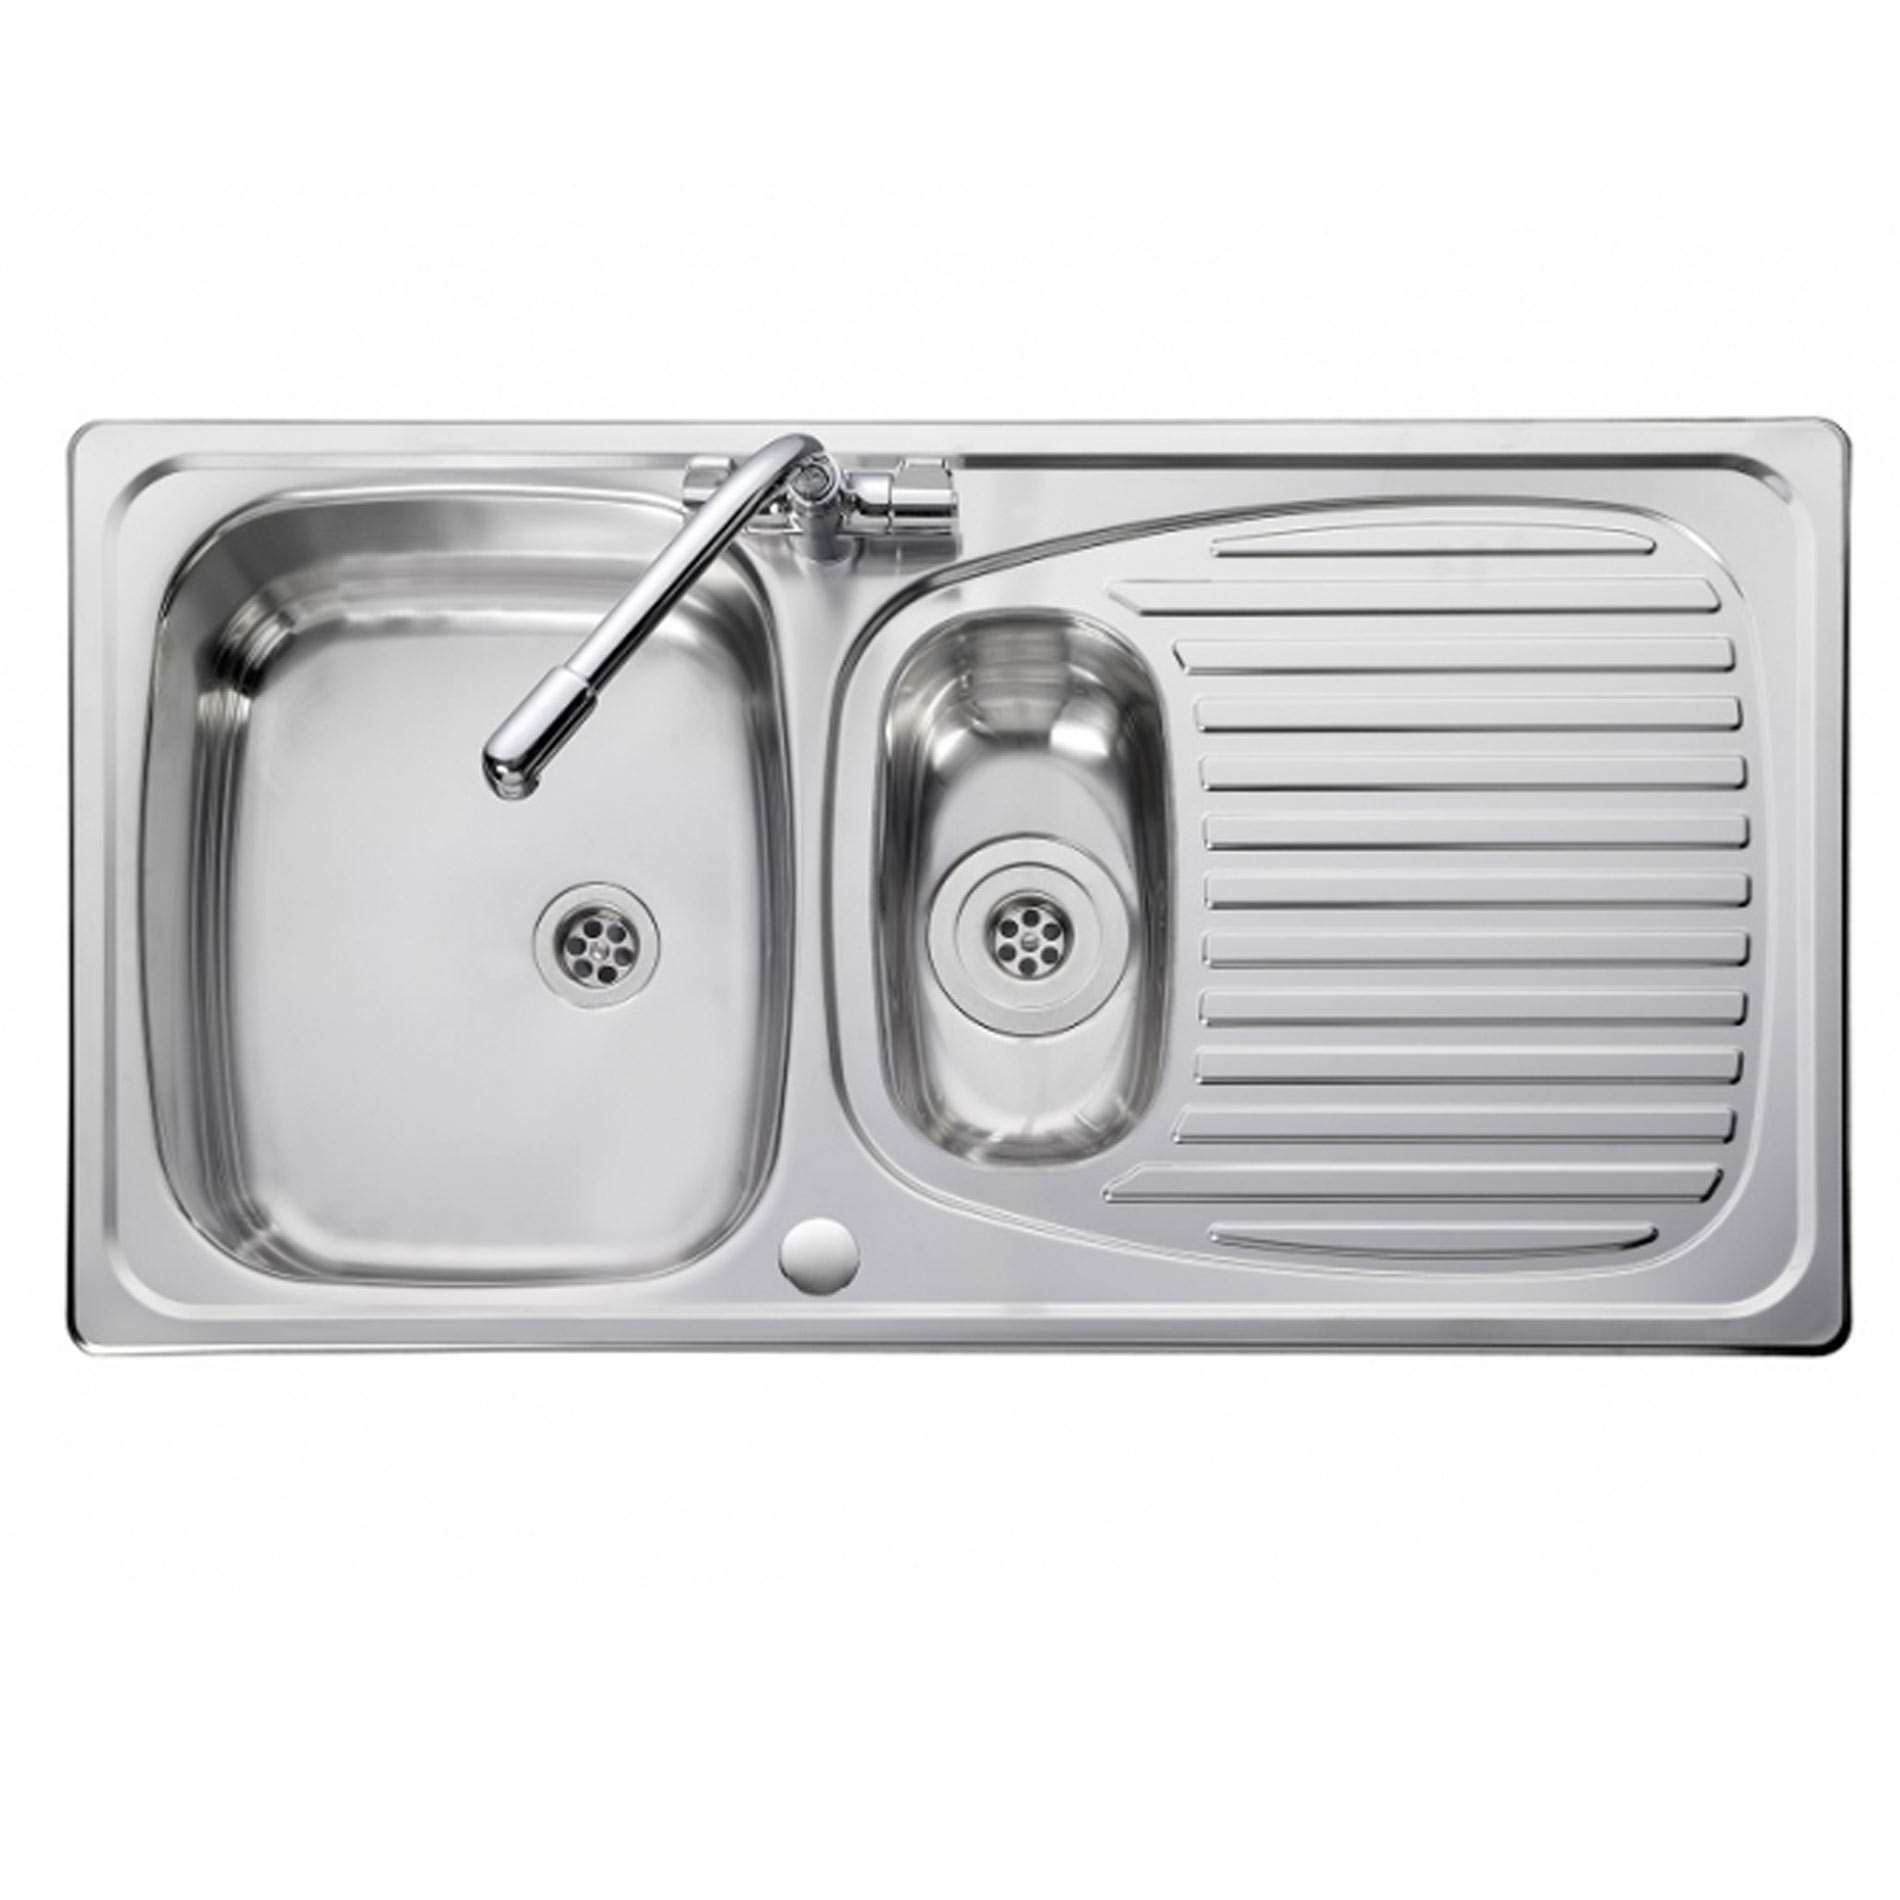 Picture of Euroline EL9502 Stainless Steel Sink